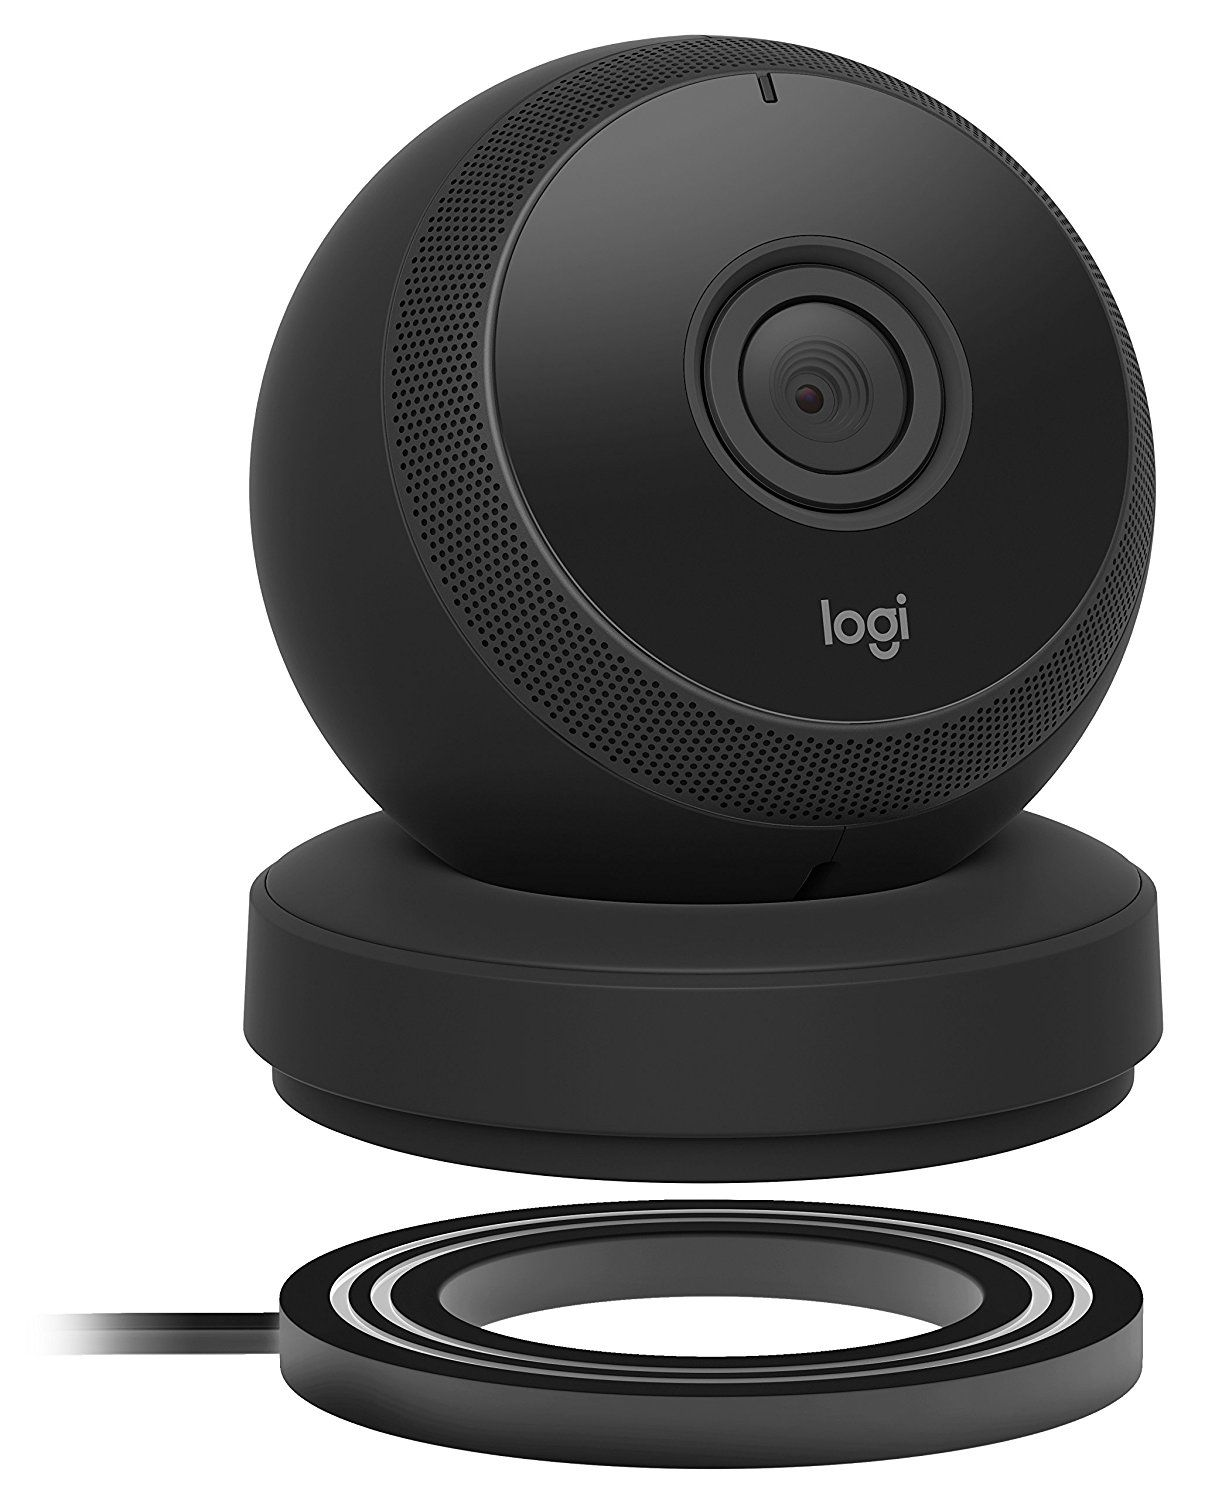 Logitech circle wireless home security security cameras